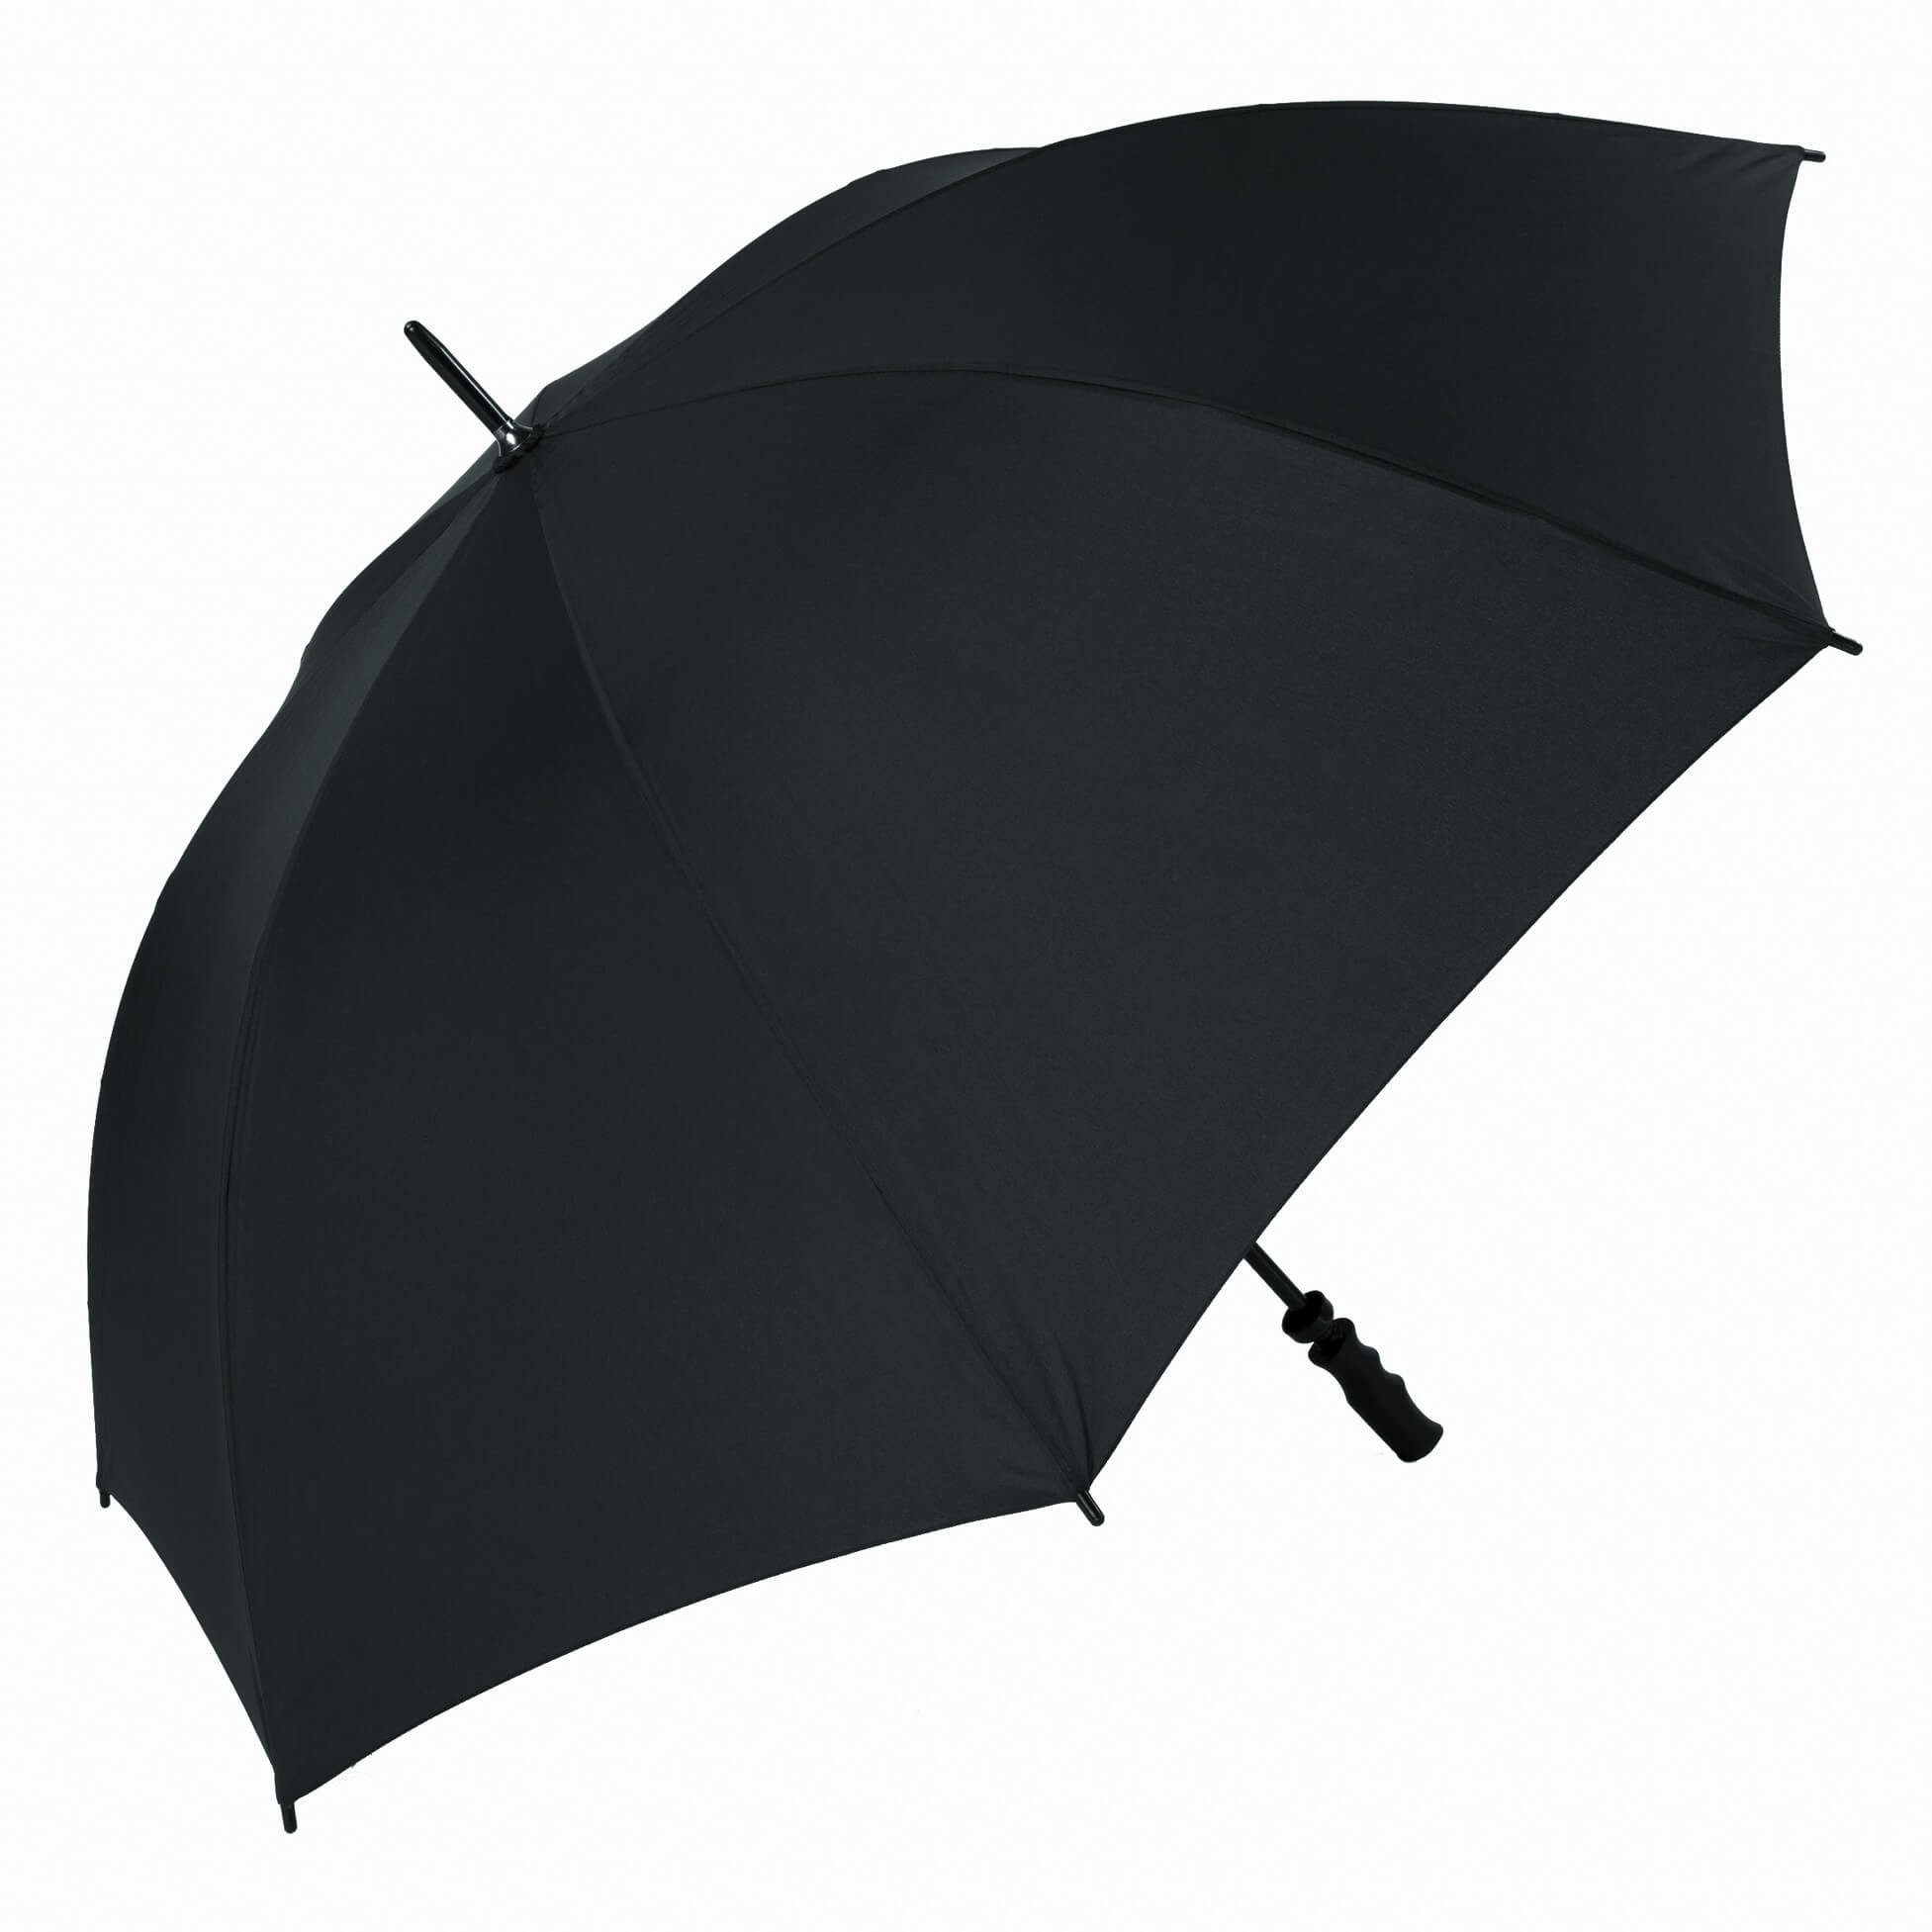 Wind Resistant Fibrelight Large Black Golf Umbrella (3473P)